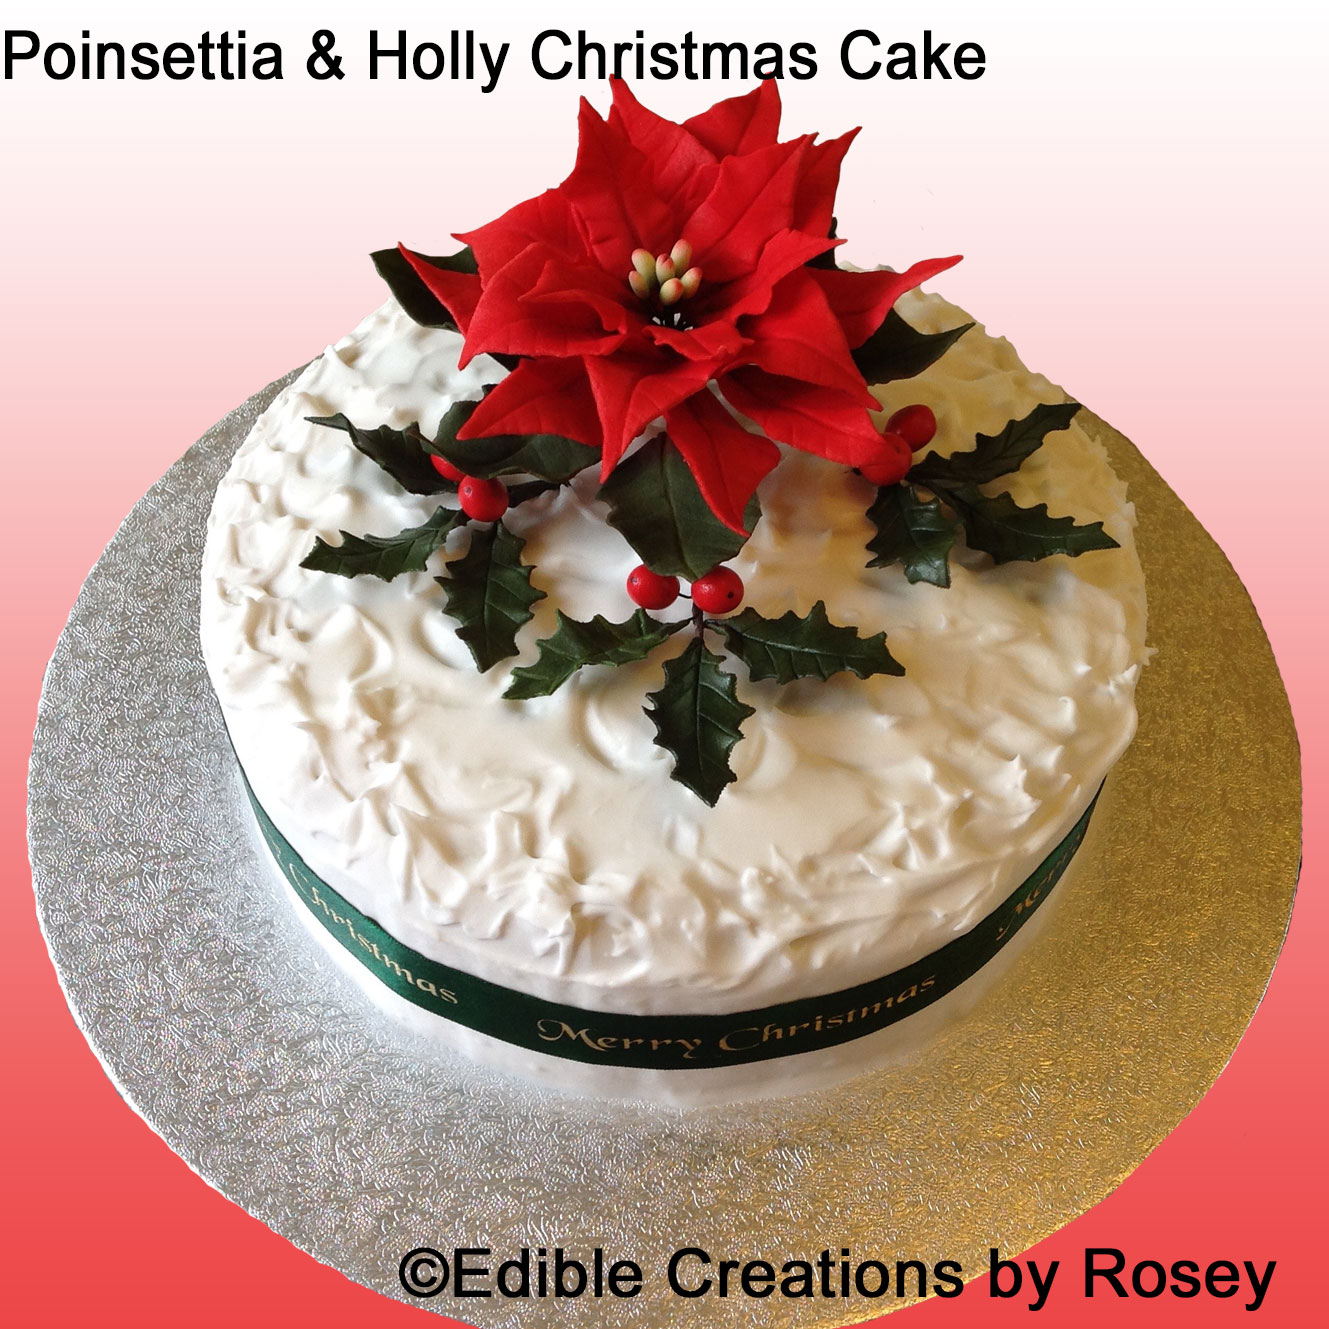 Christmas Cake Decoration Holly : Reviews on Edible Creations by Rosey